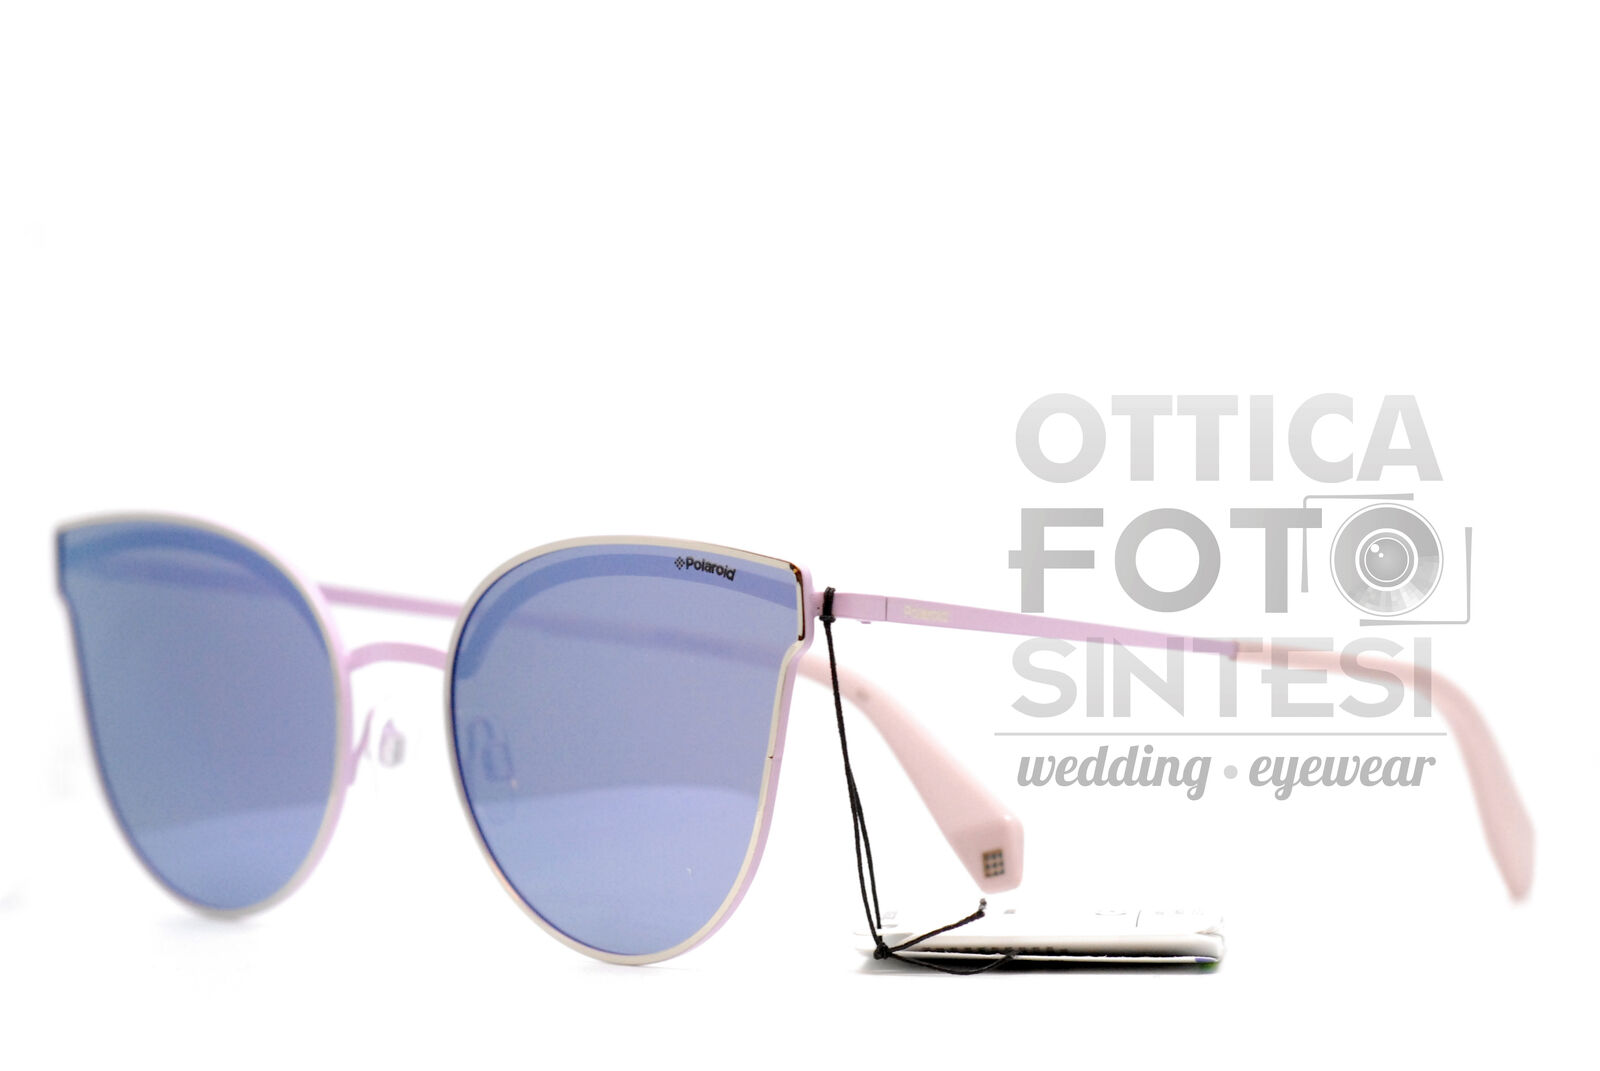 c4066e9417ae Polaroid PLD 4056 s 3yg MF Light Gold Sunglasses Purple Mirror Polarized  Lens for sale online